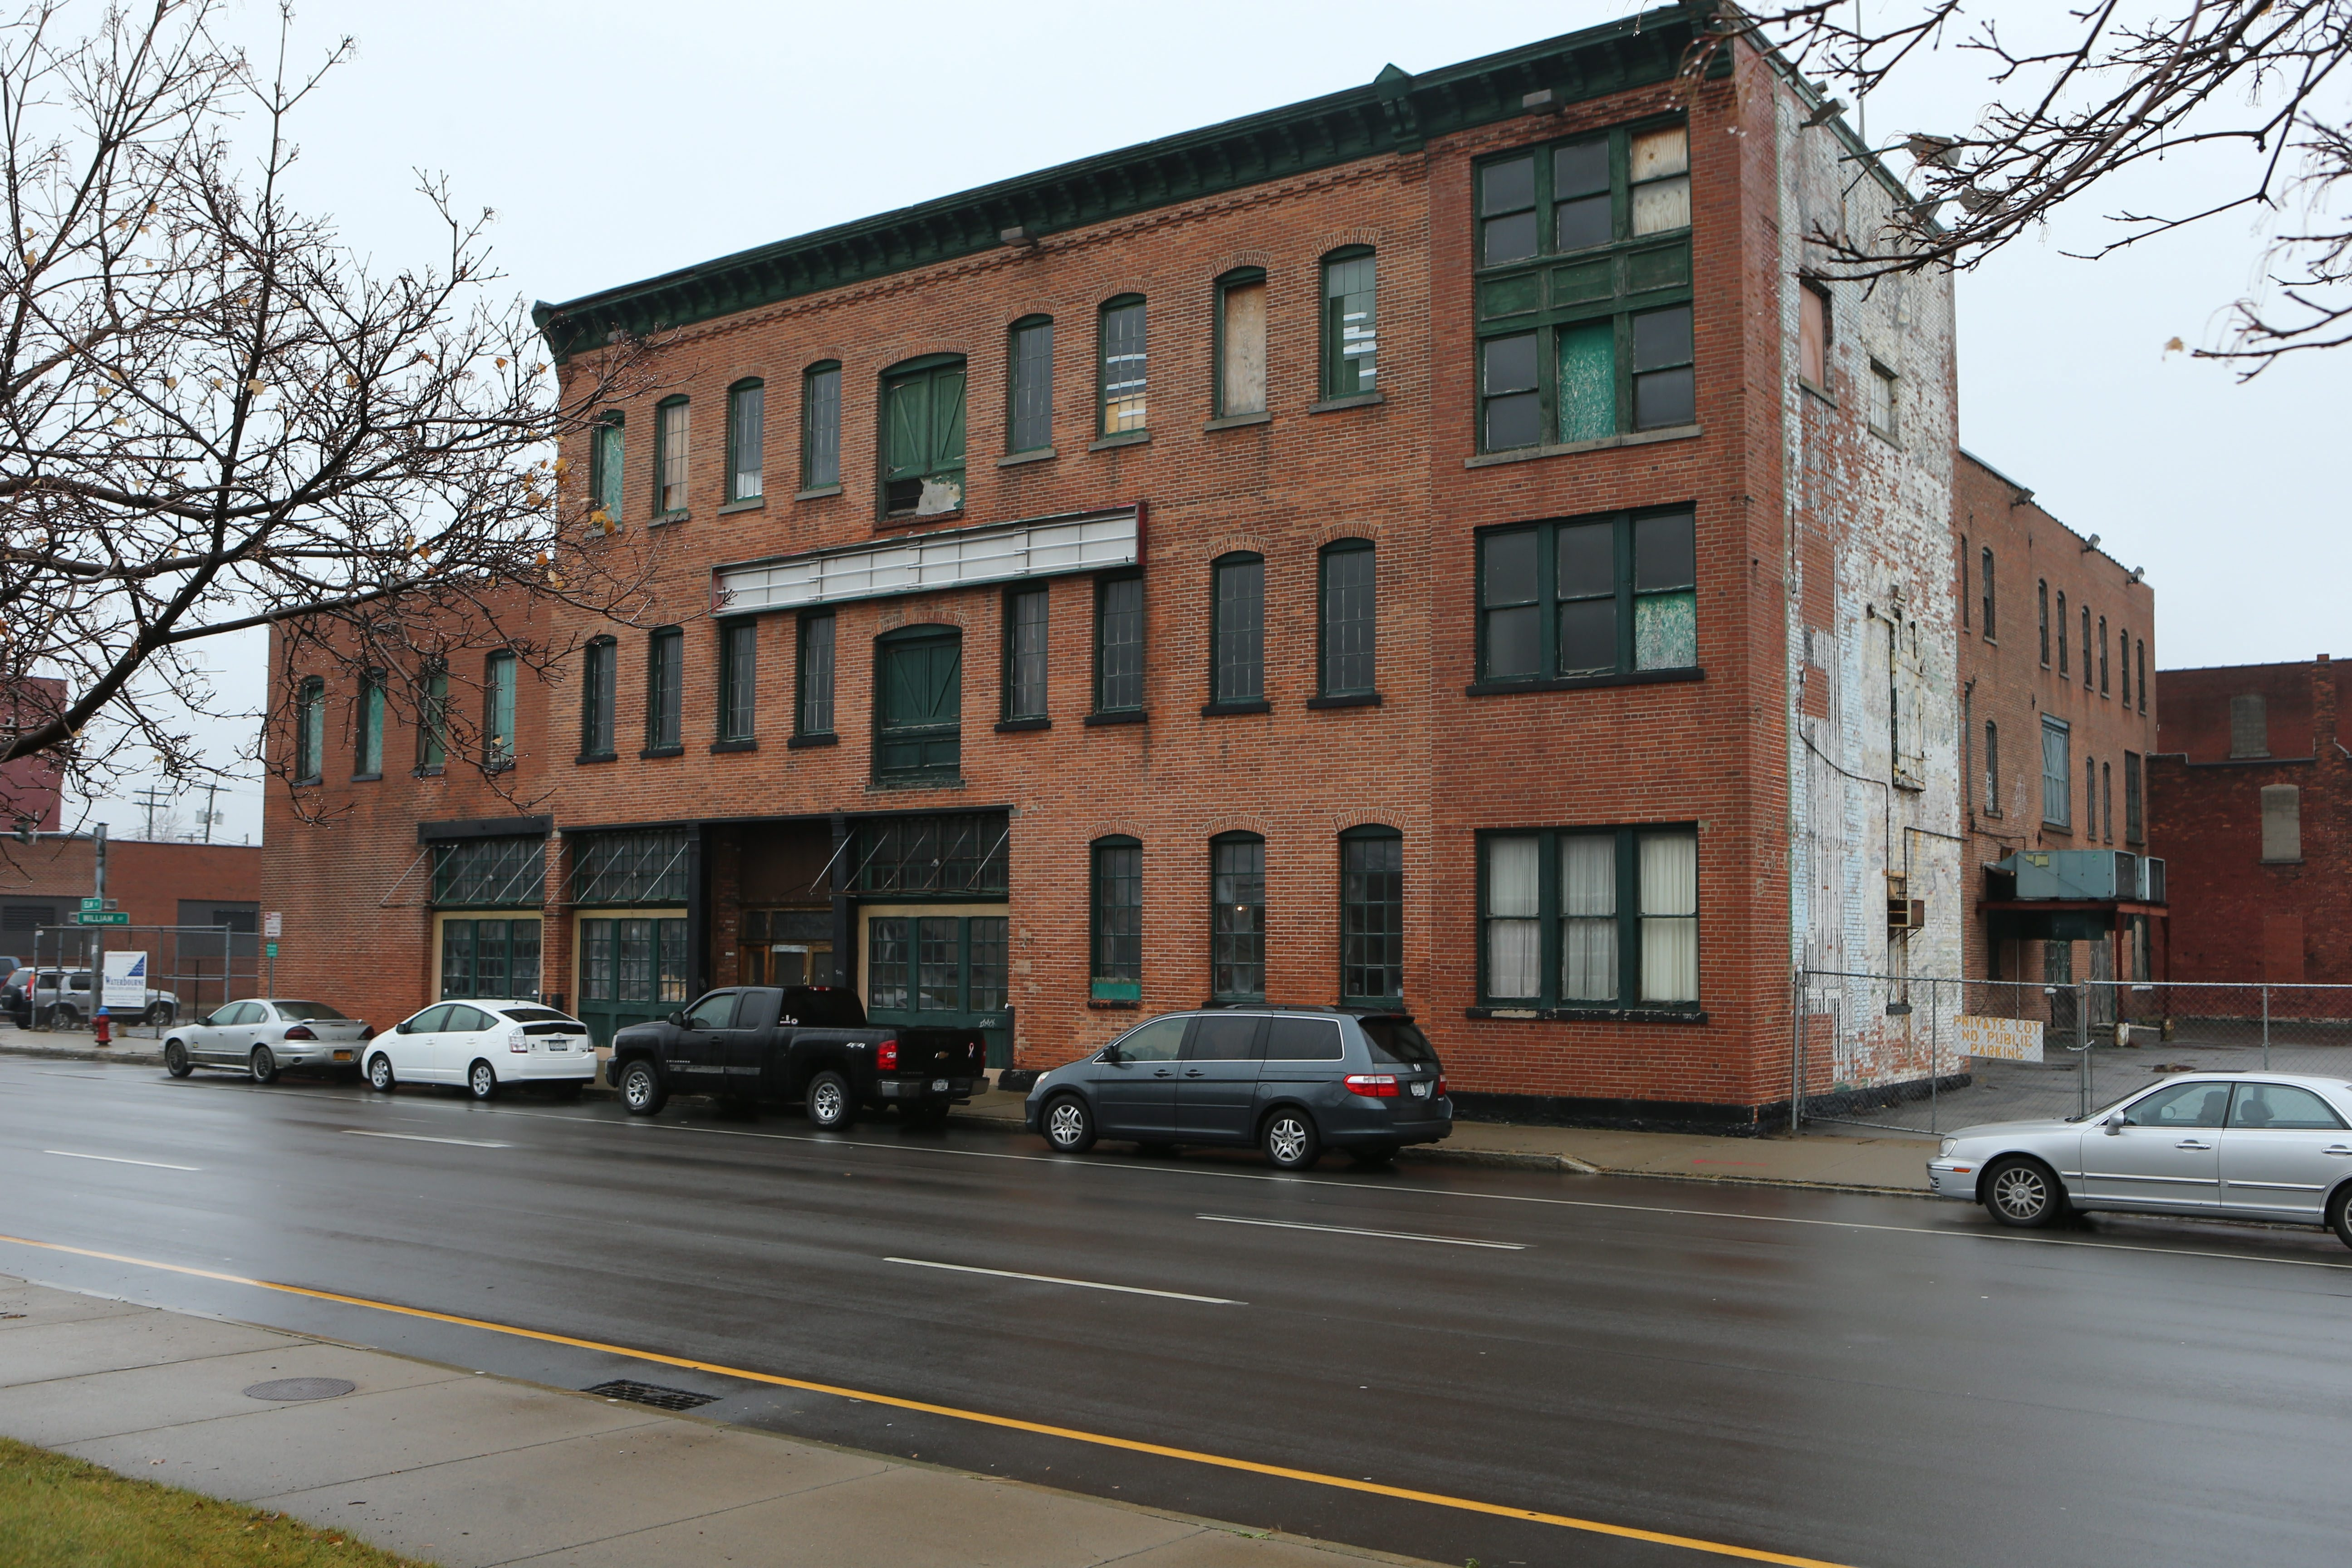 The former Spaghetti Warehouse restaurant at 141 Elm St. will be turned into apartments and office space by TM Montante.